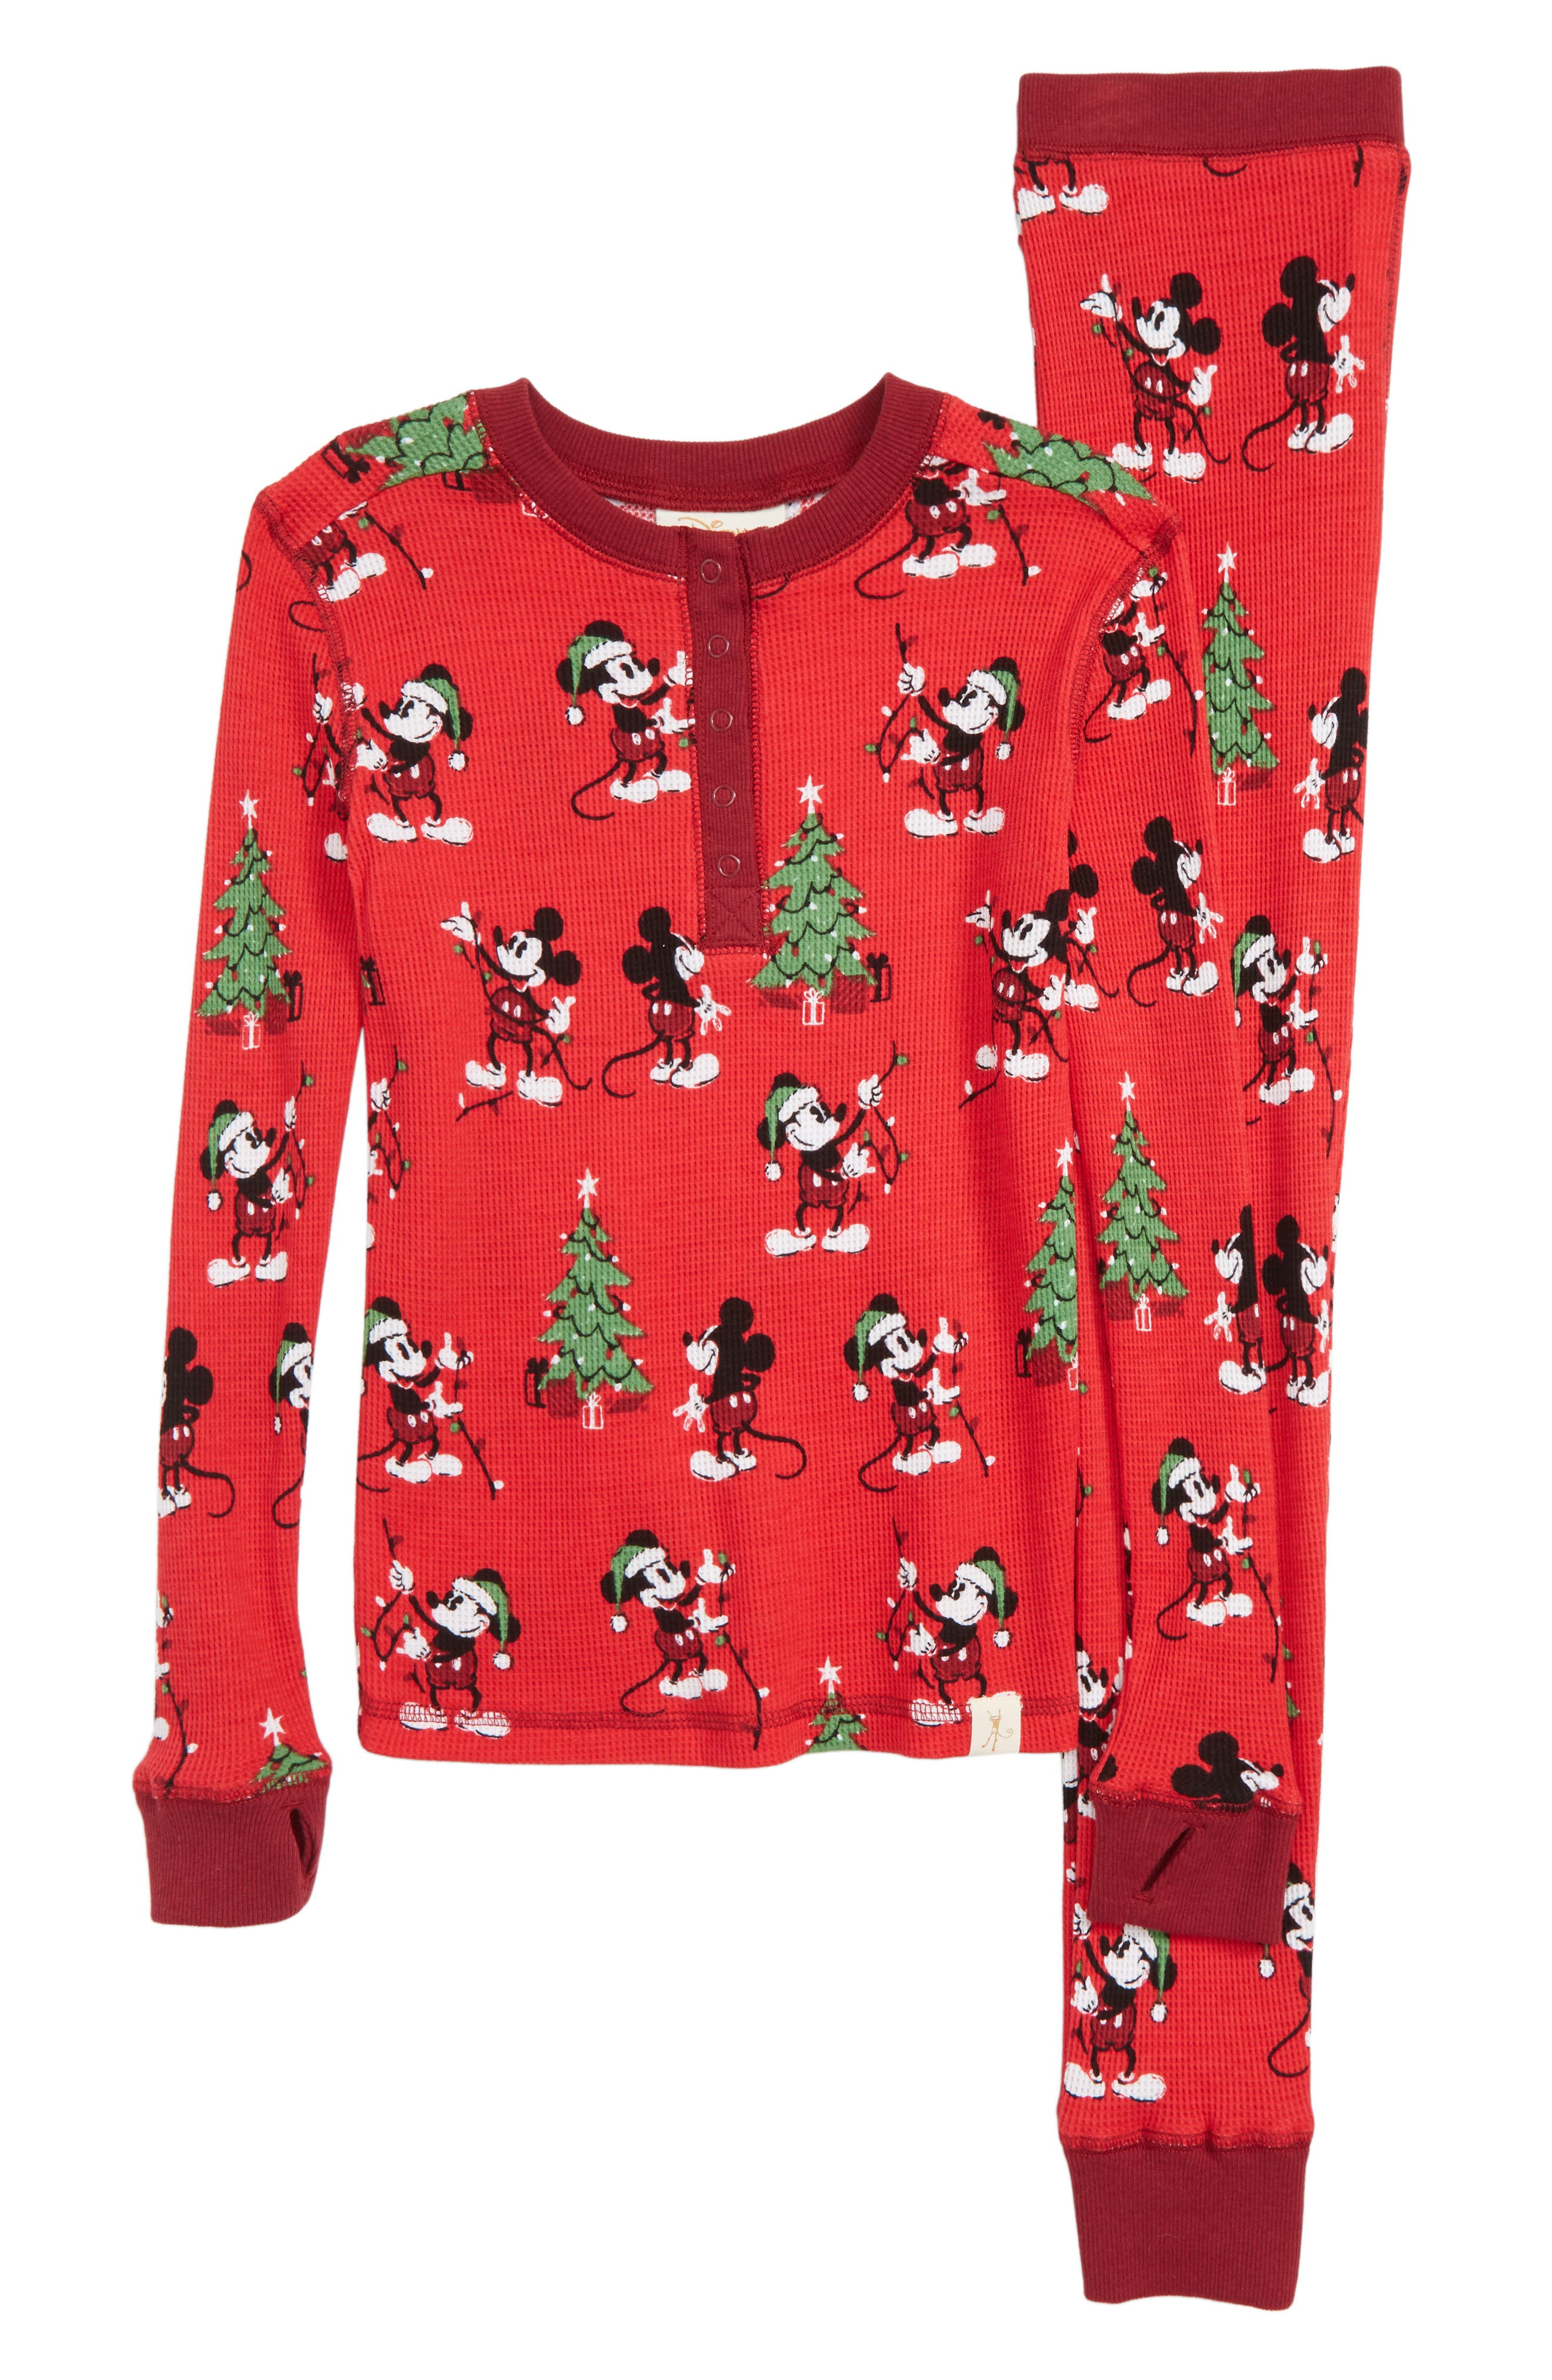 x Disney Mickey Mouse Christmas Fitted Two-Piece Pajamas,                             Main thumbnail 1, color,                             RED